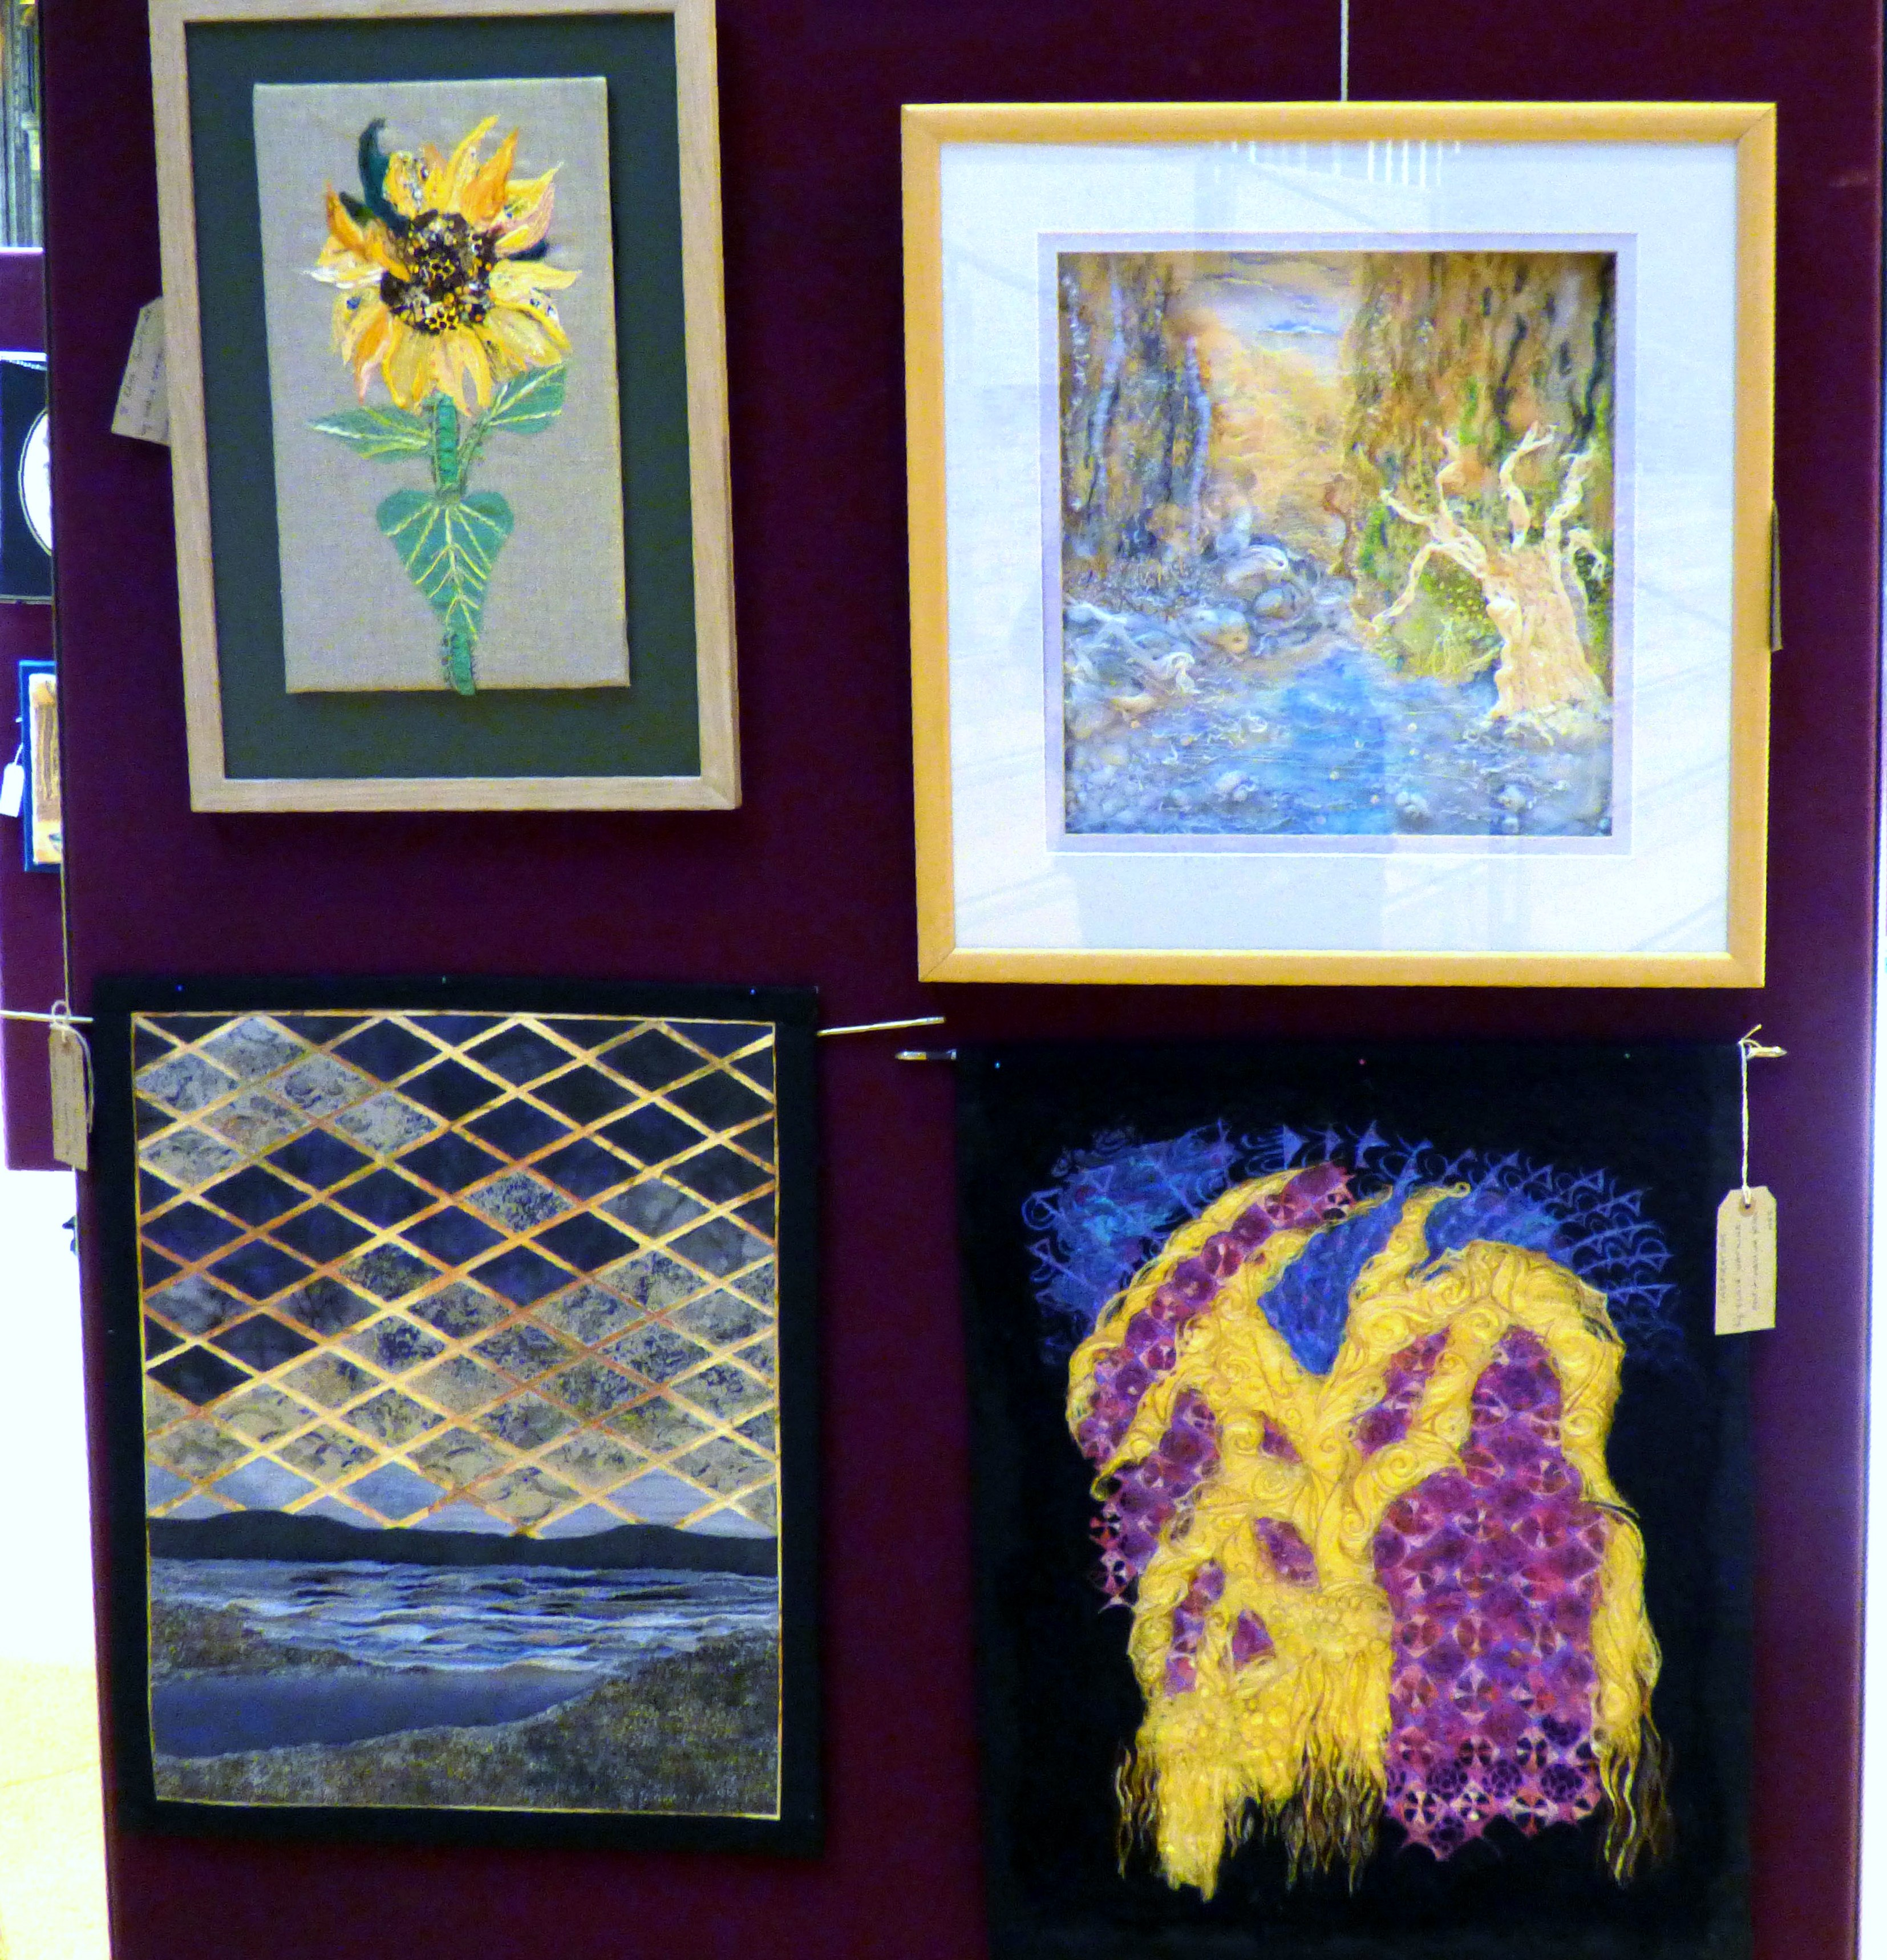 ST ERME SUNFLOWER by Marie Stacey, SAMARIA GORGE, CRETE by Linda Sowler, STORMY WEATHER by Barbara reece and INSPIRATION by Elsie Watkins at 60 Glorious Years exhibition 2016